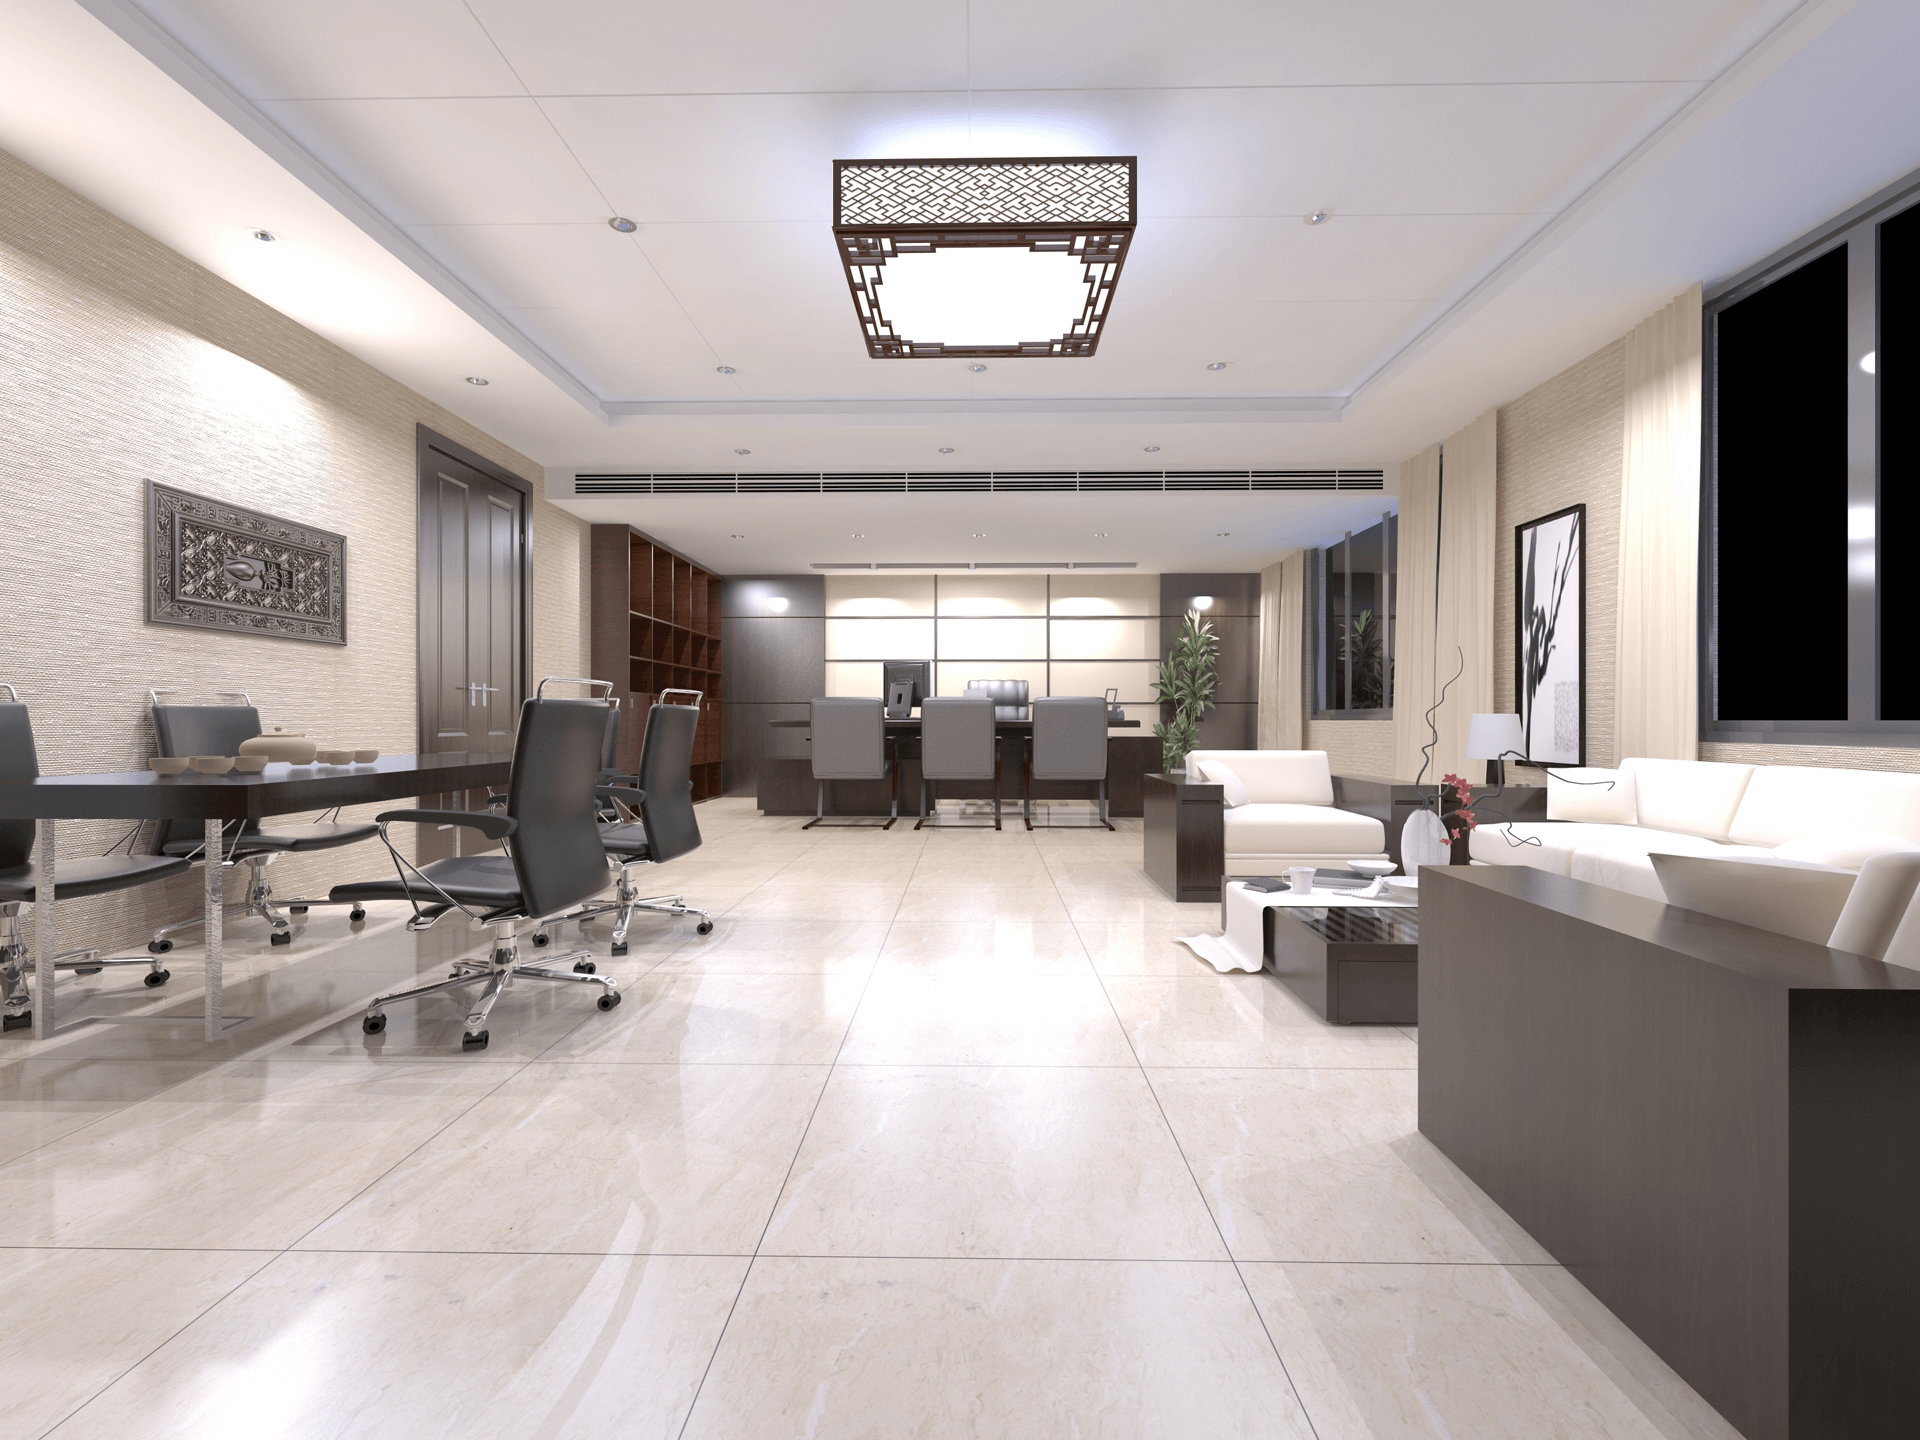 office room chairs suspended ceiling lamp